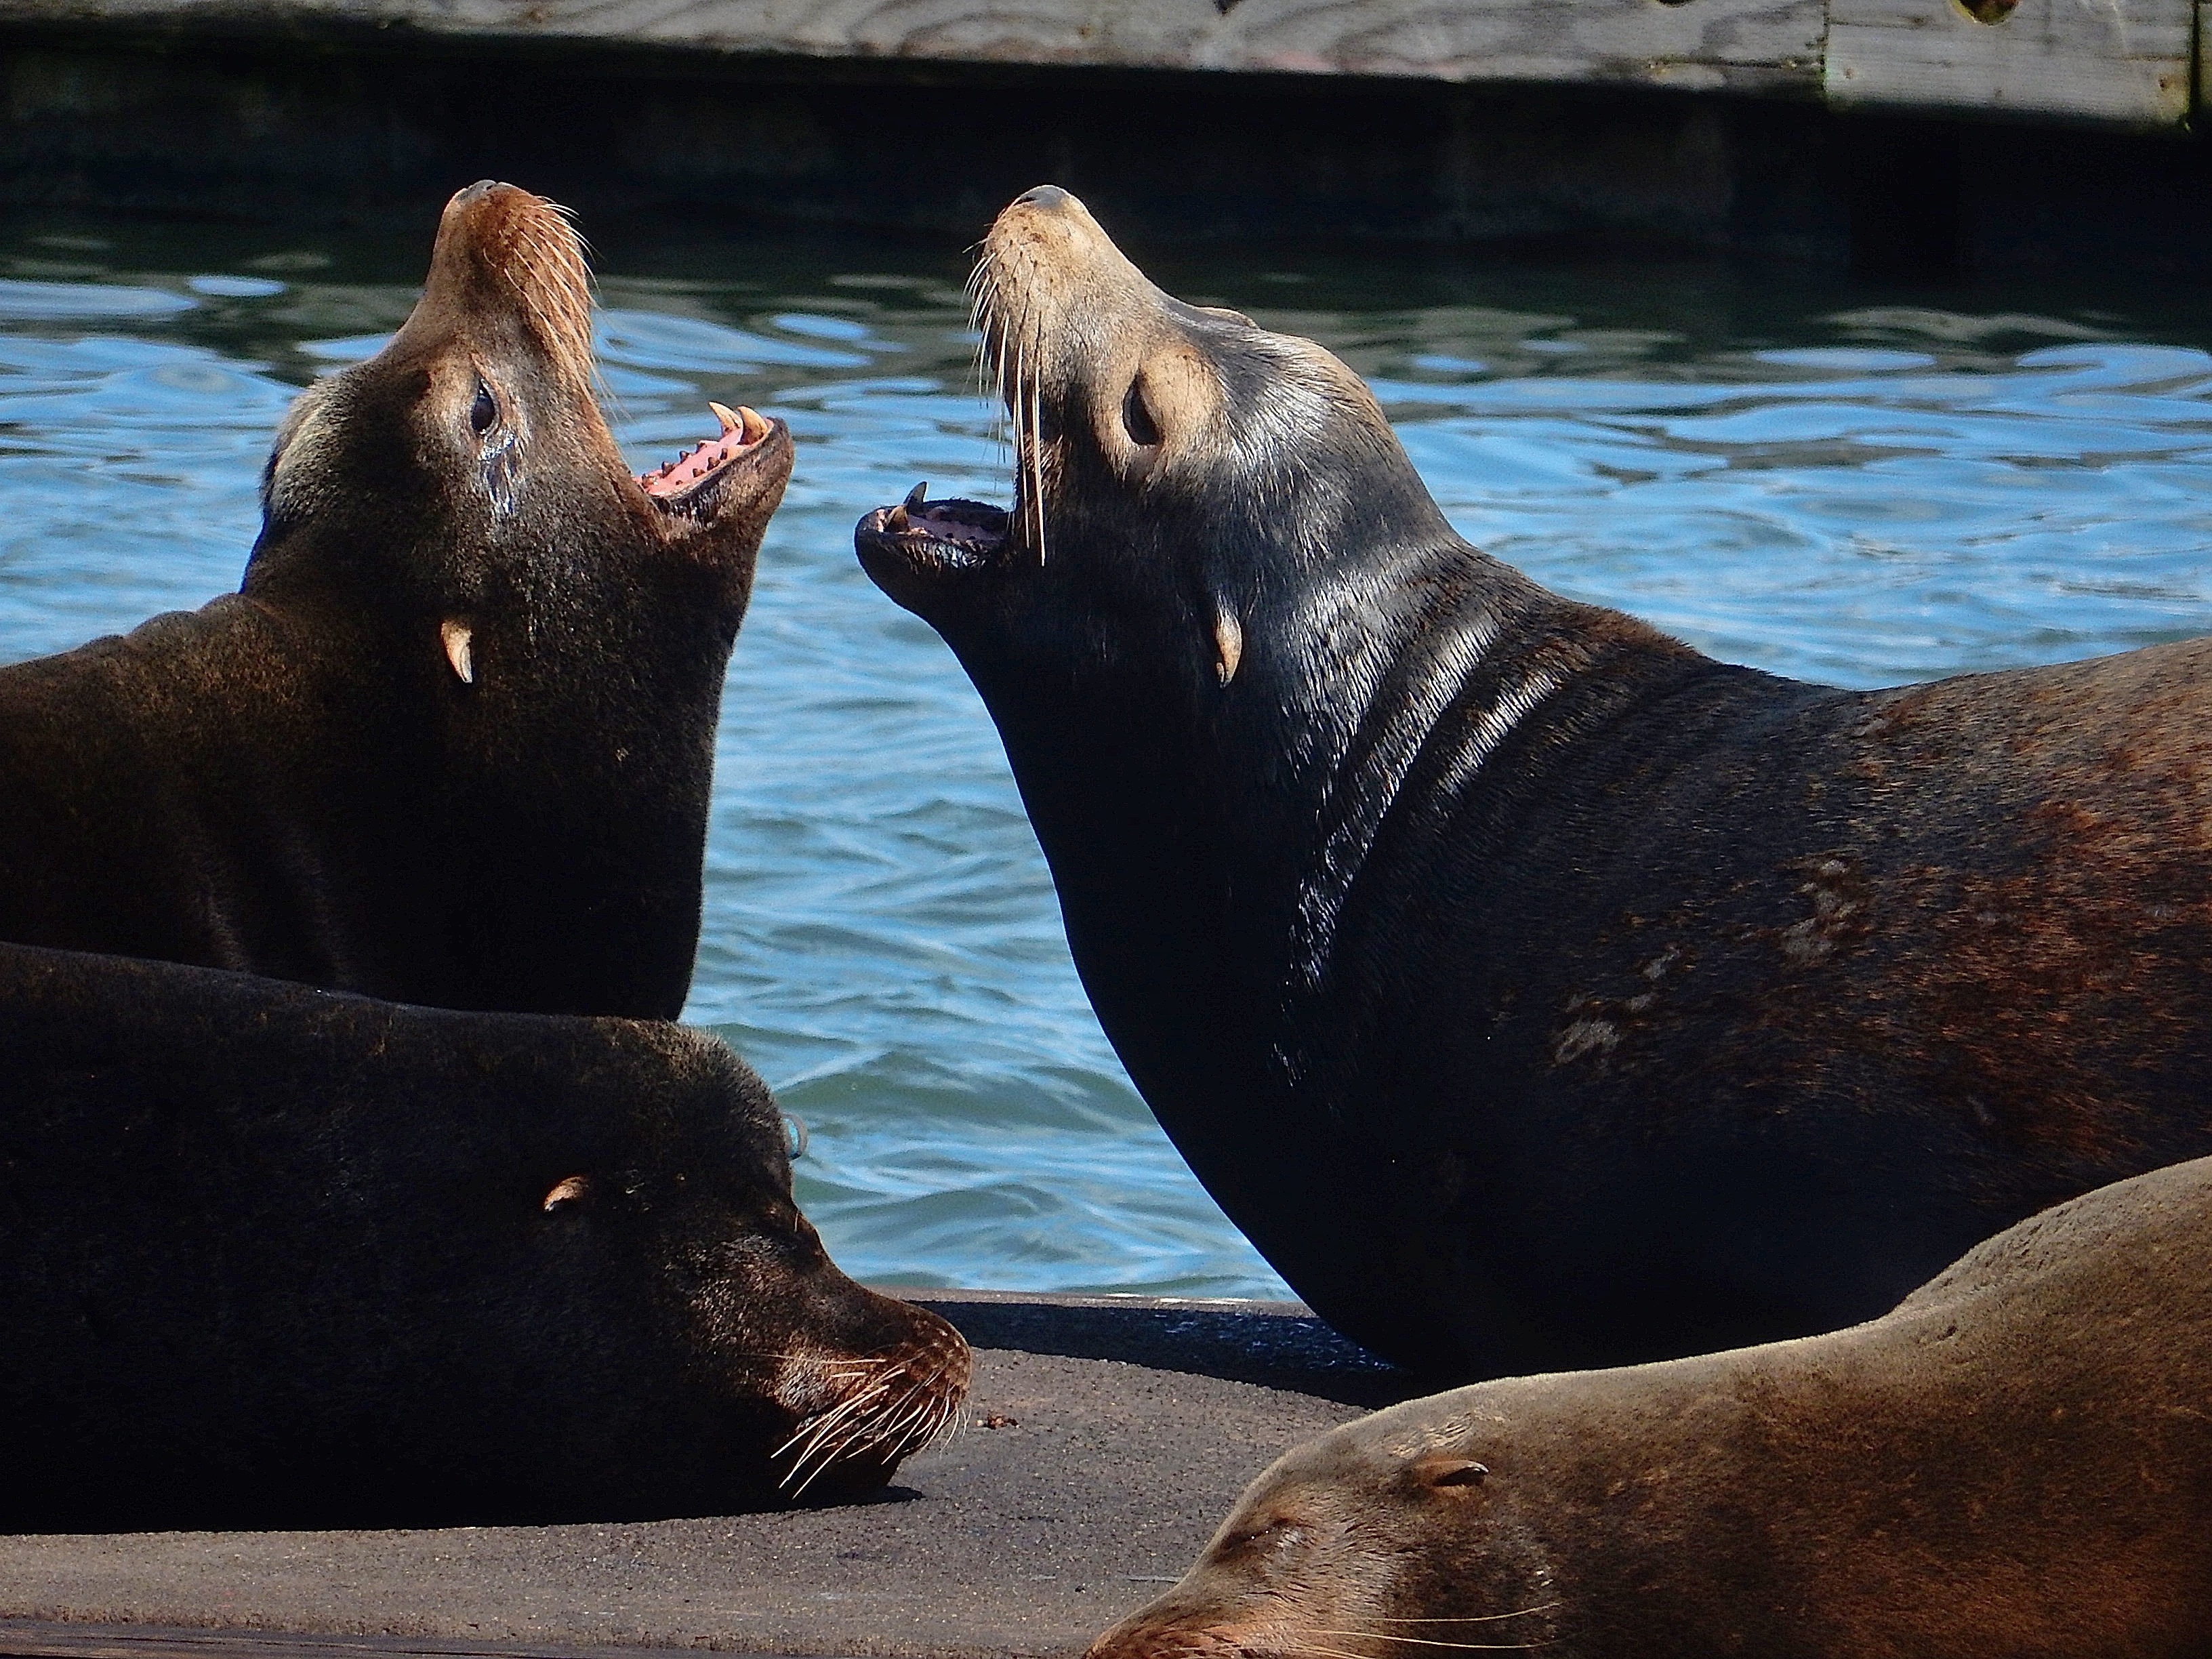 California sea lions at Westport. photo: Joe Meche